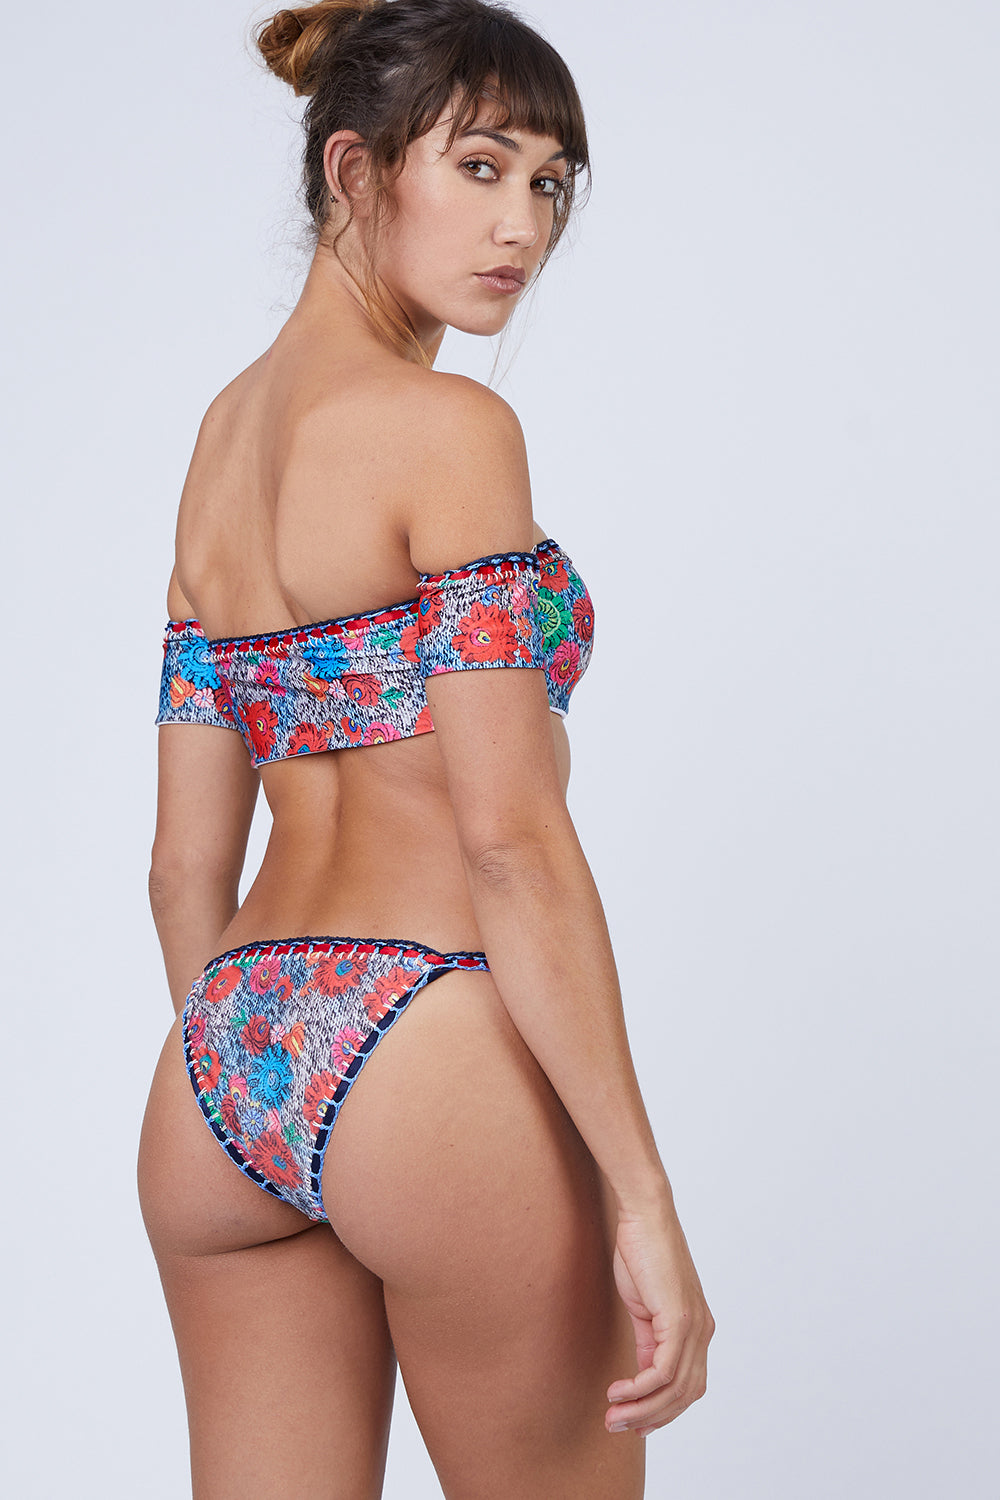 Fiamma Crochet Thin Strap Bikini Bottom - Blue & Red Floral Print